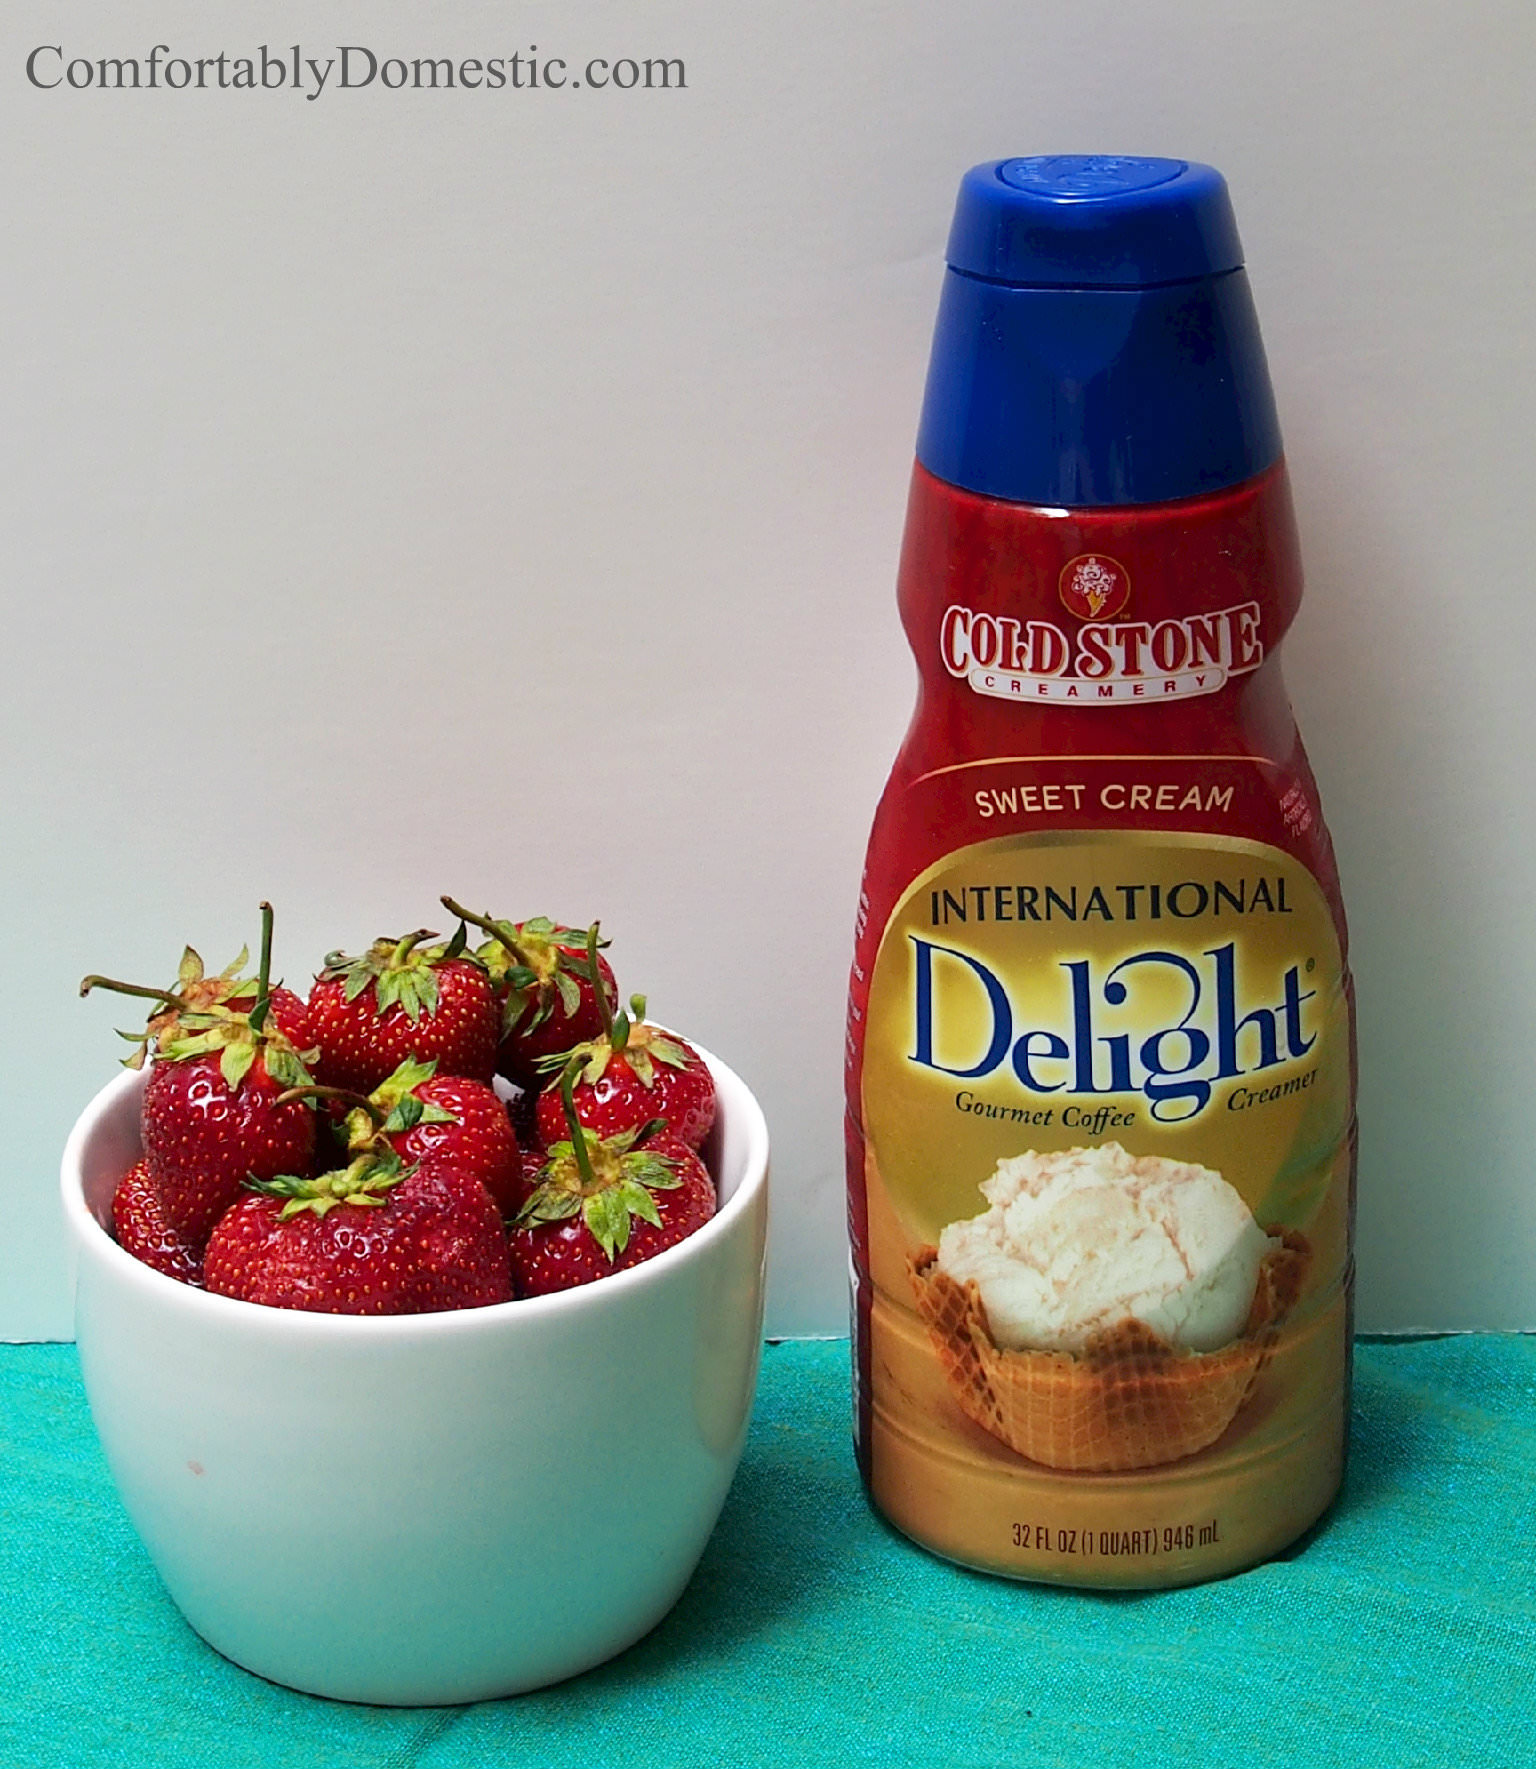 Strawberries and cream, in the form of frozen bars, makes for a tasty and refreshing summer time treat! Easy to make with the help of Cold Stone International Delights creamer!